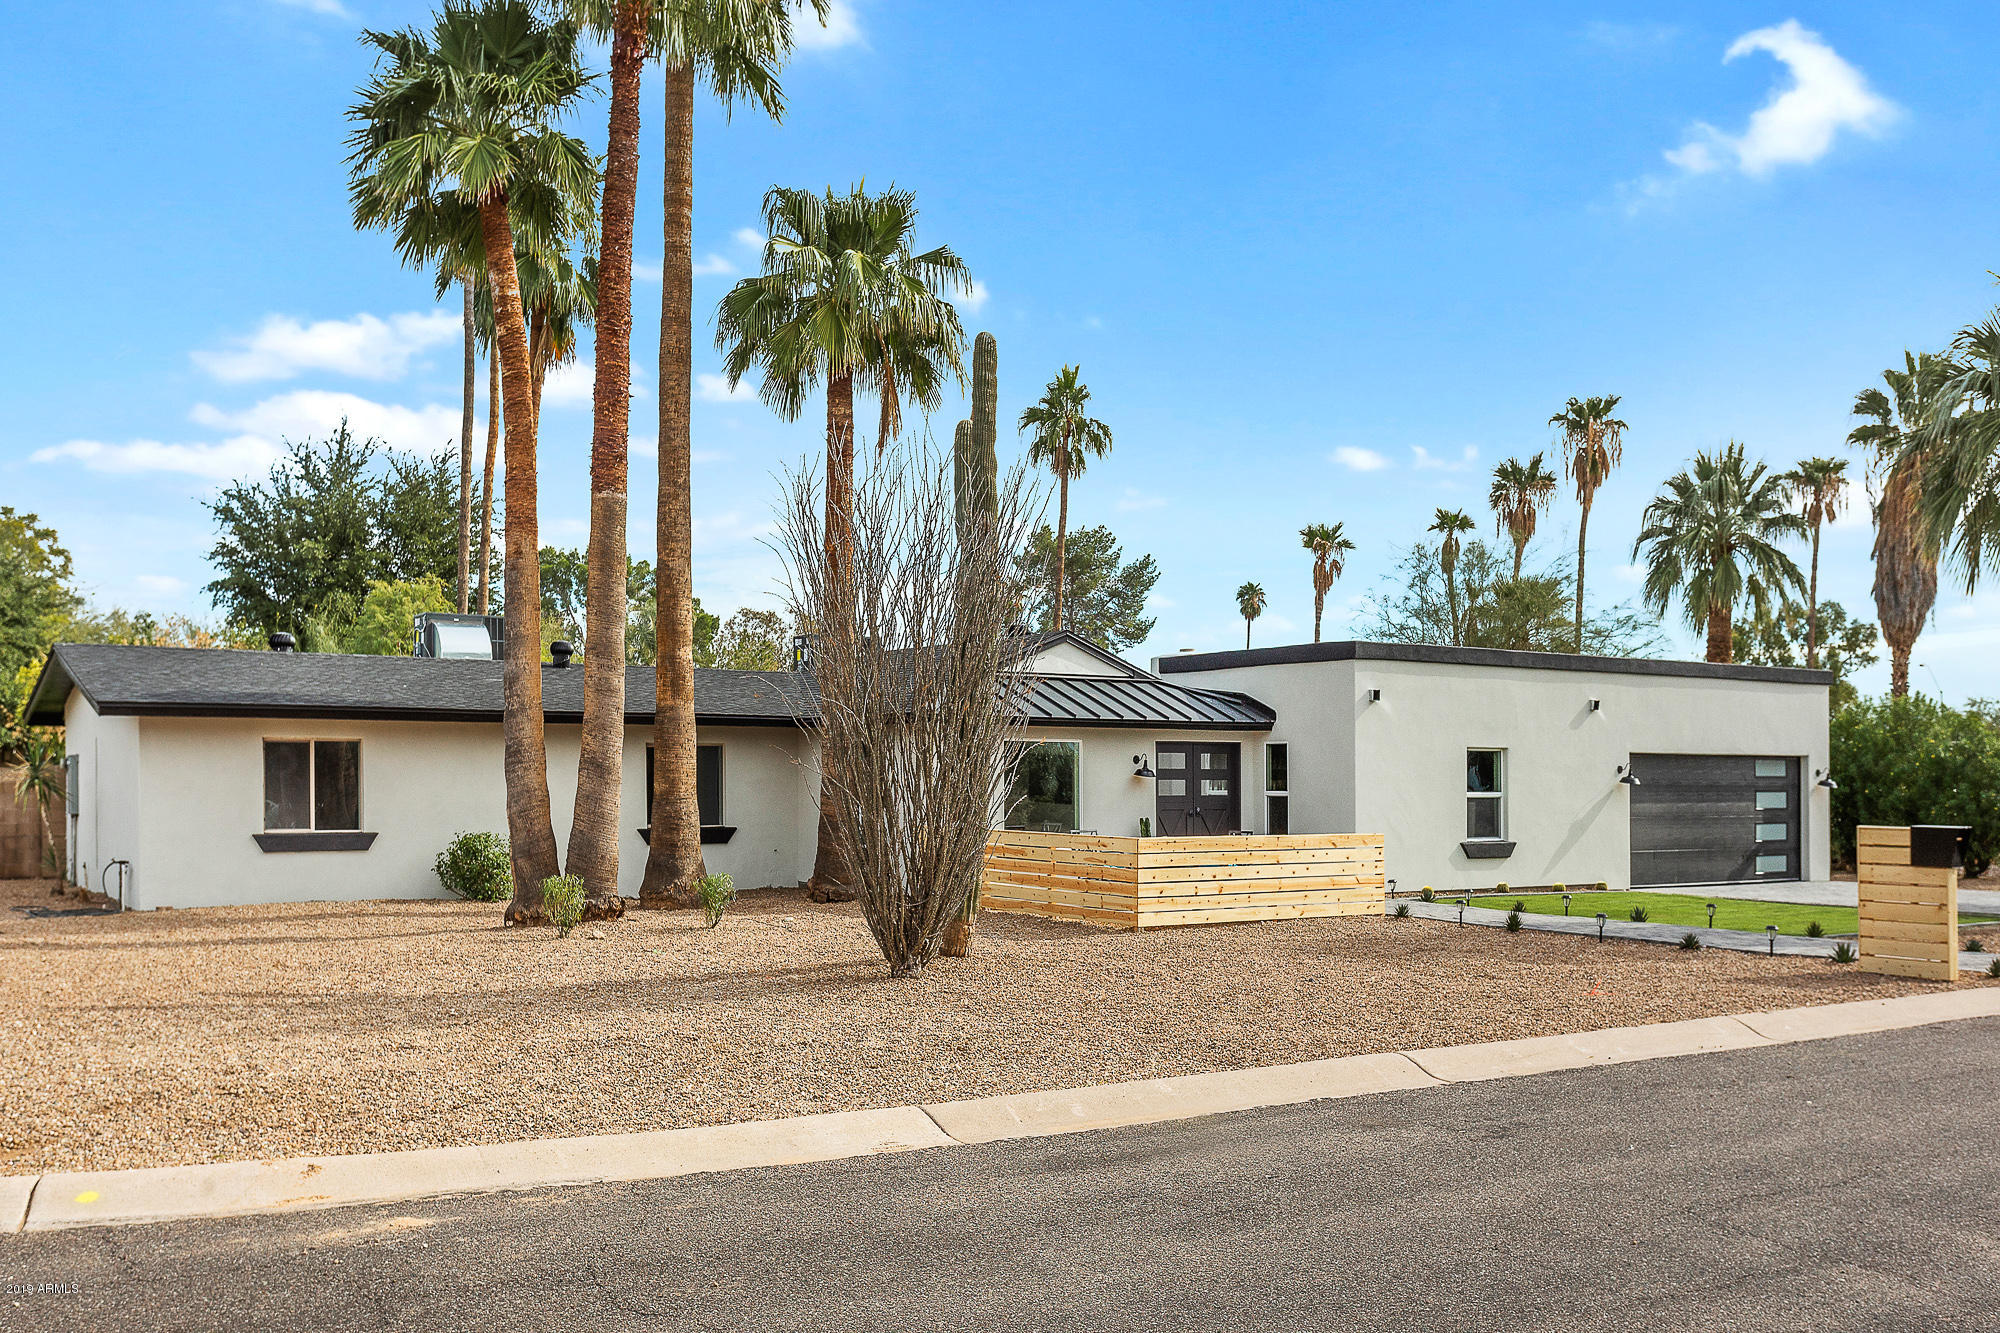 12227 N 62nd Place, Scottsdale AZ 85254